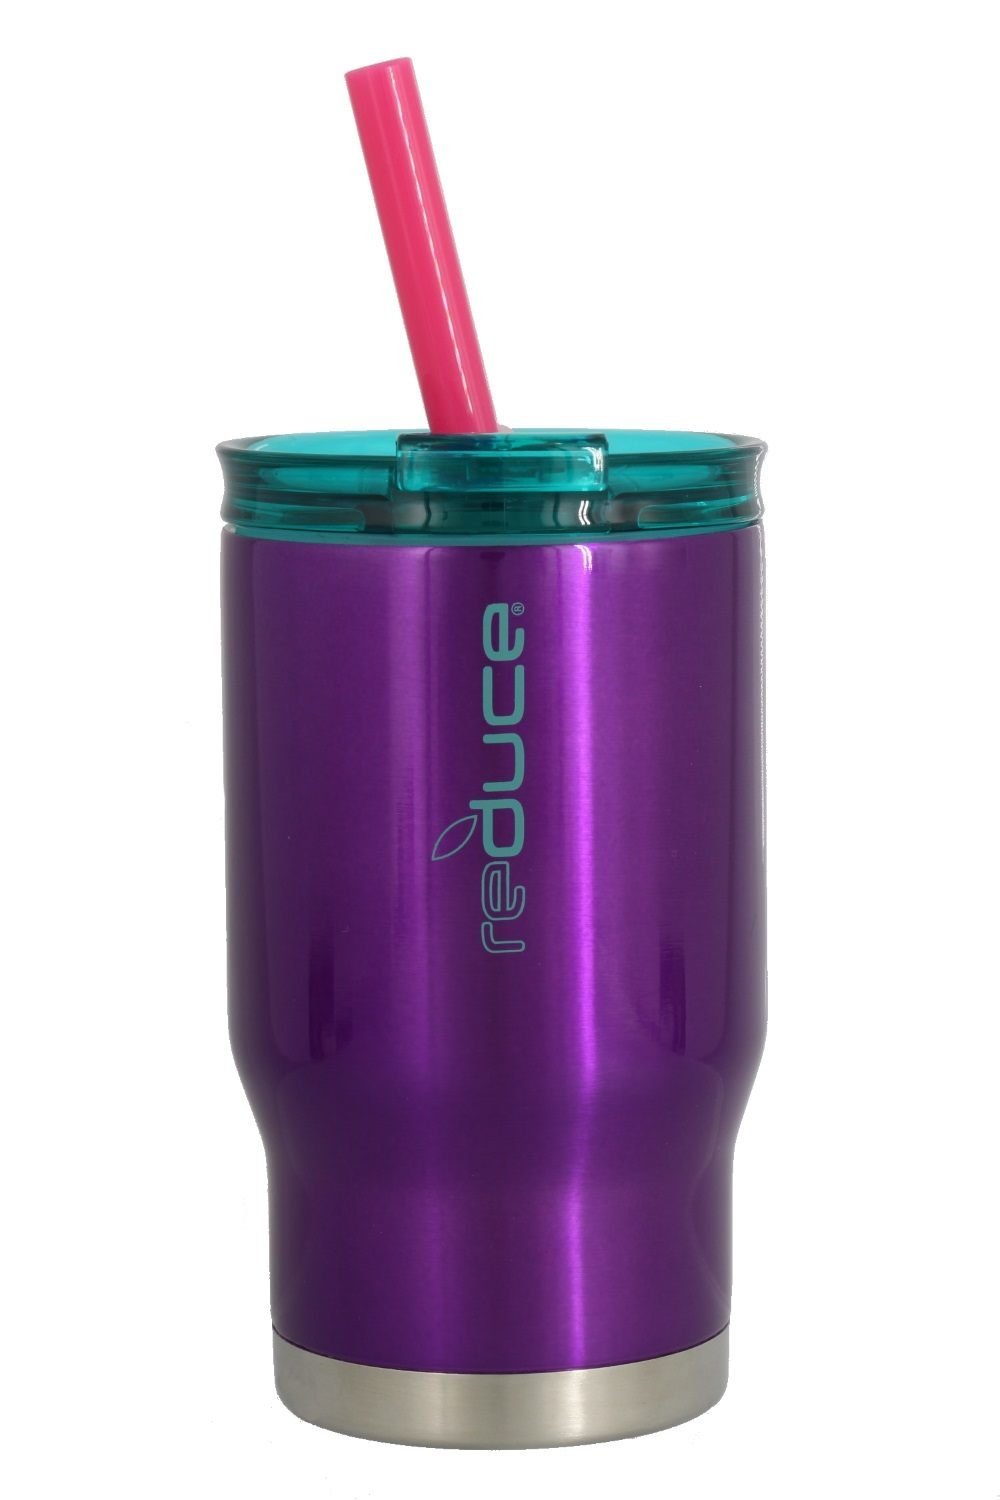 reduce COLDEE Vacuum Insulated Stainless Steel Kids Tumbler with Straw, 3-in-1 Lid, 14oz - Tasteless and Odorless, BPA Free, Portable & Great for Children (Purple w/Teal Accents)